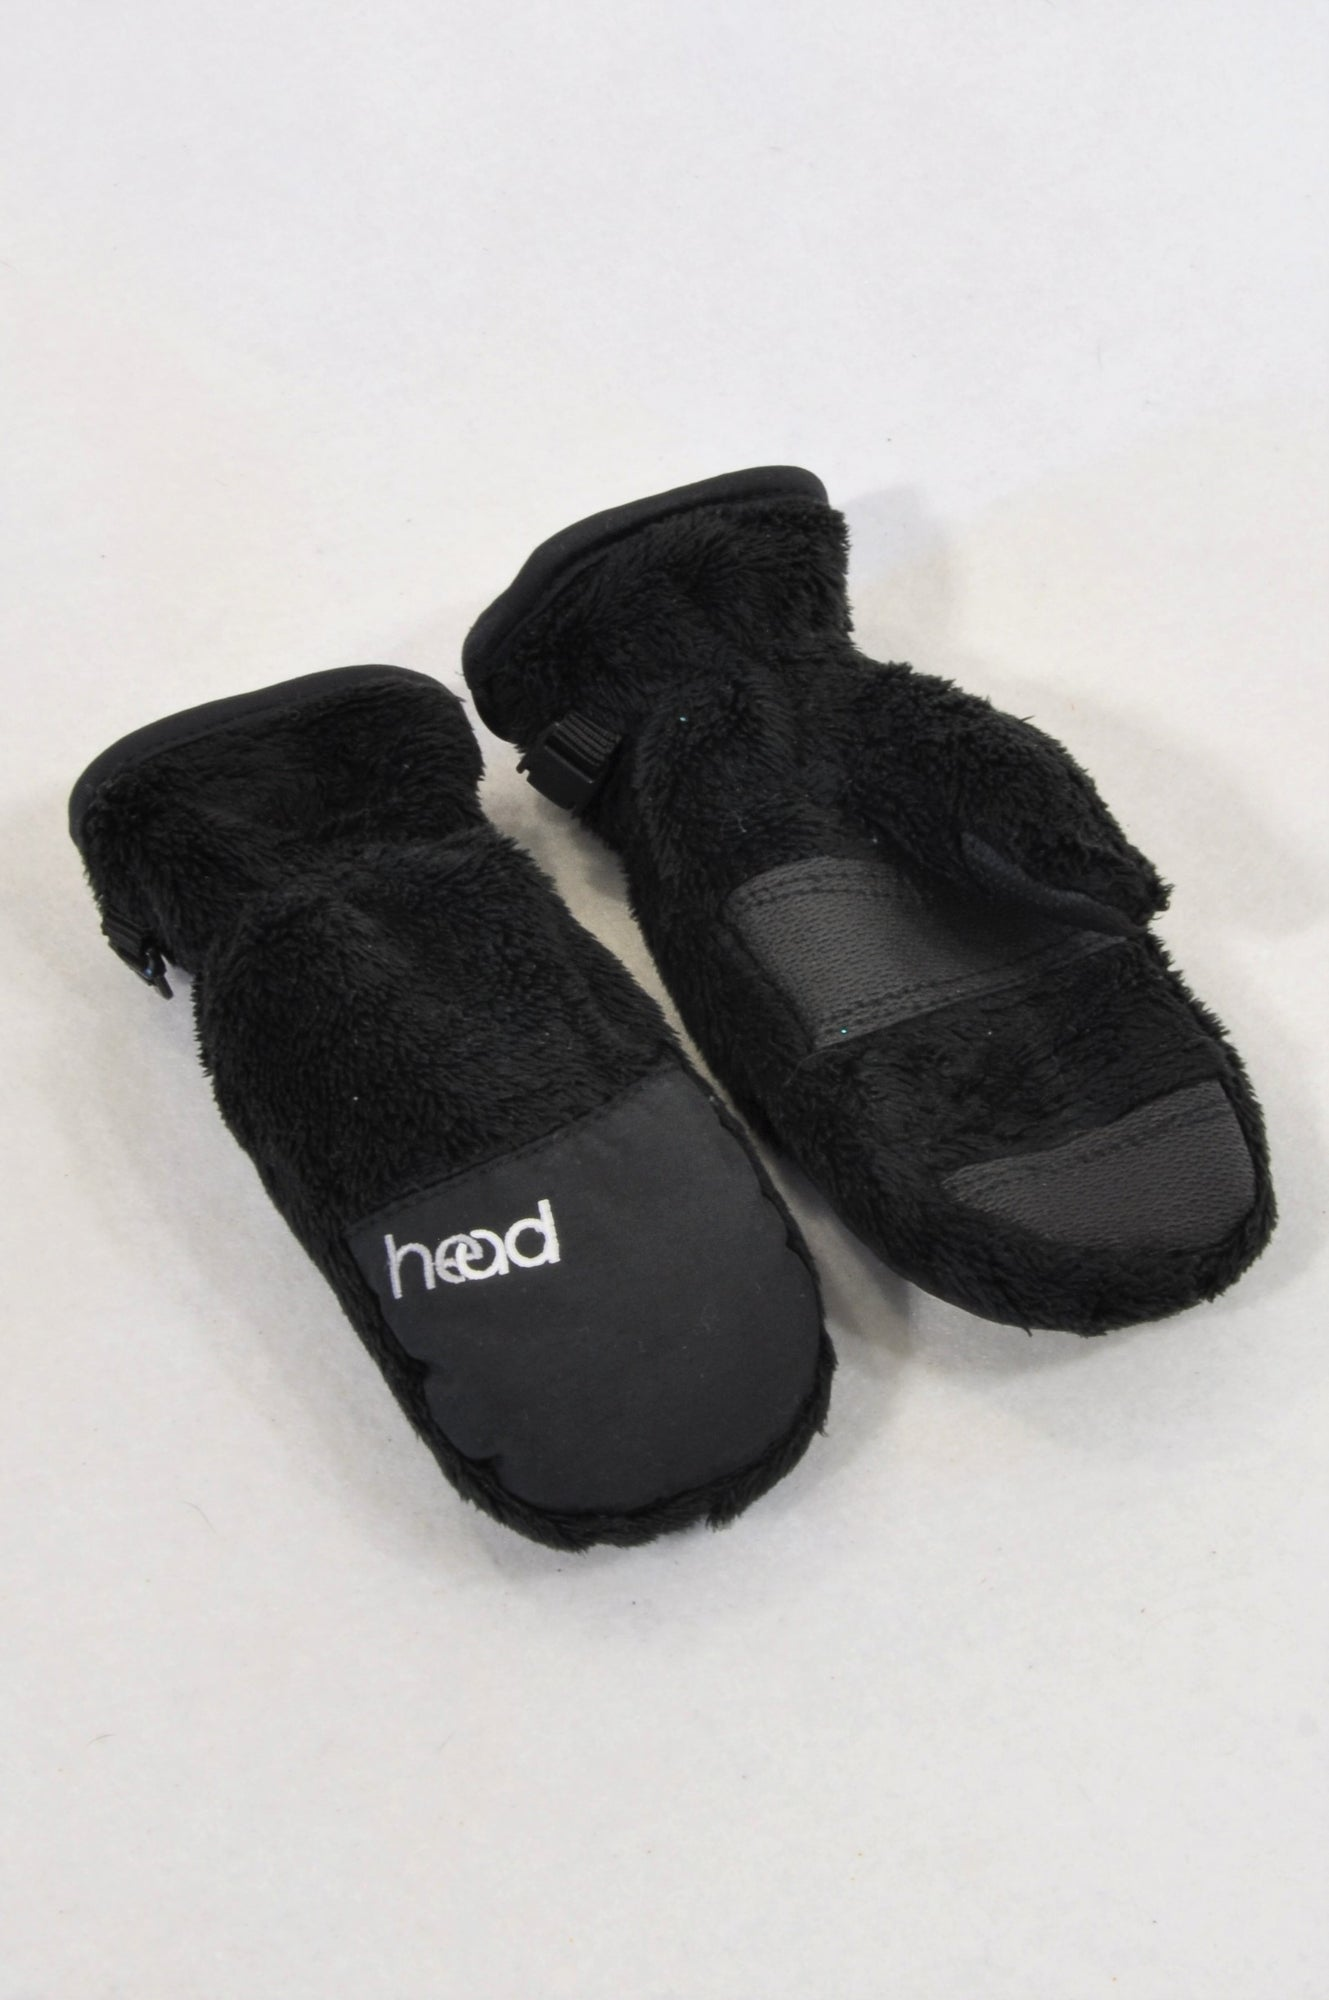 Head Black Faux Fur Snow Mittens Unisex 2-4 years